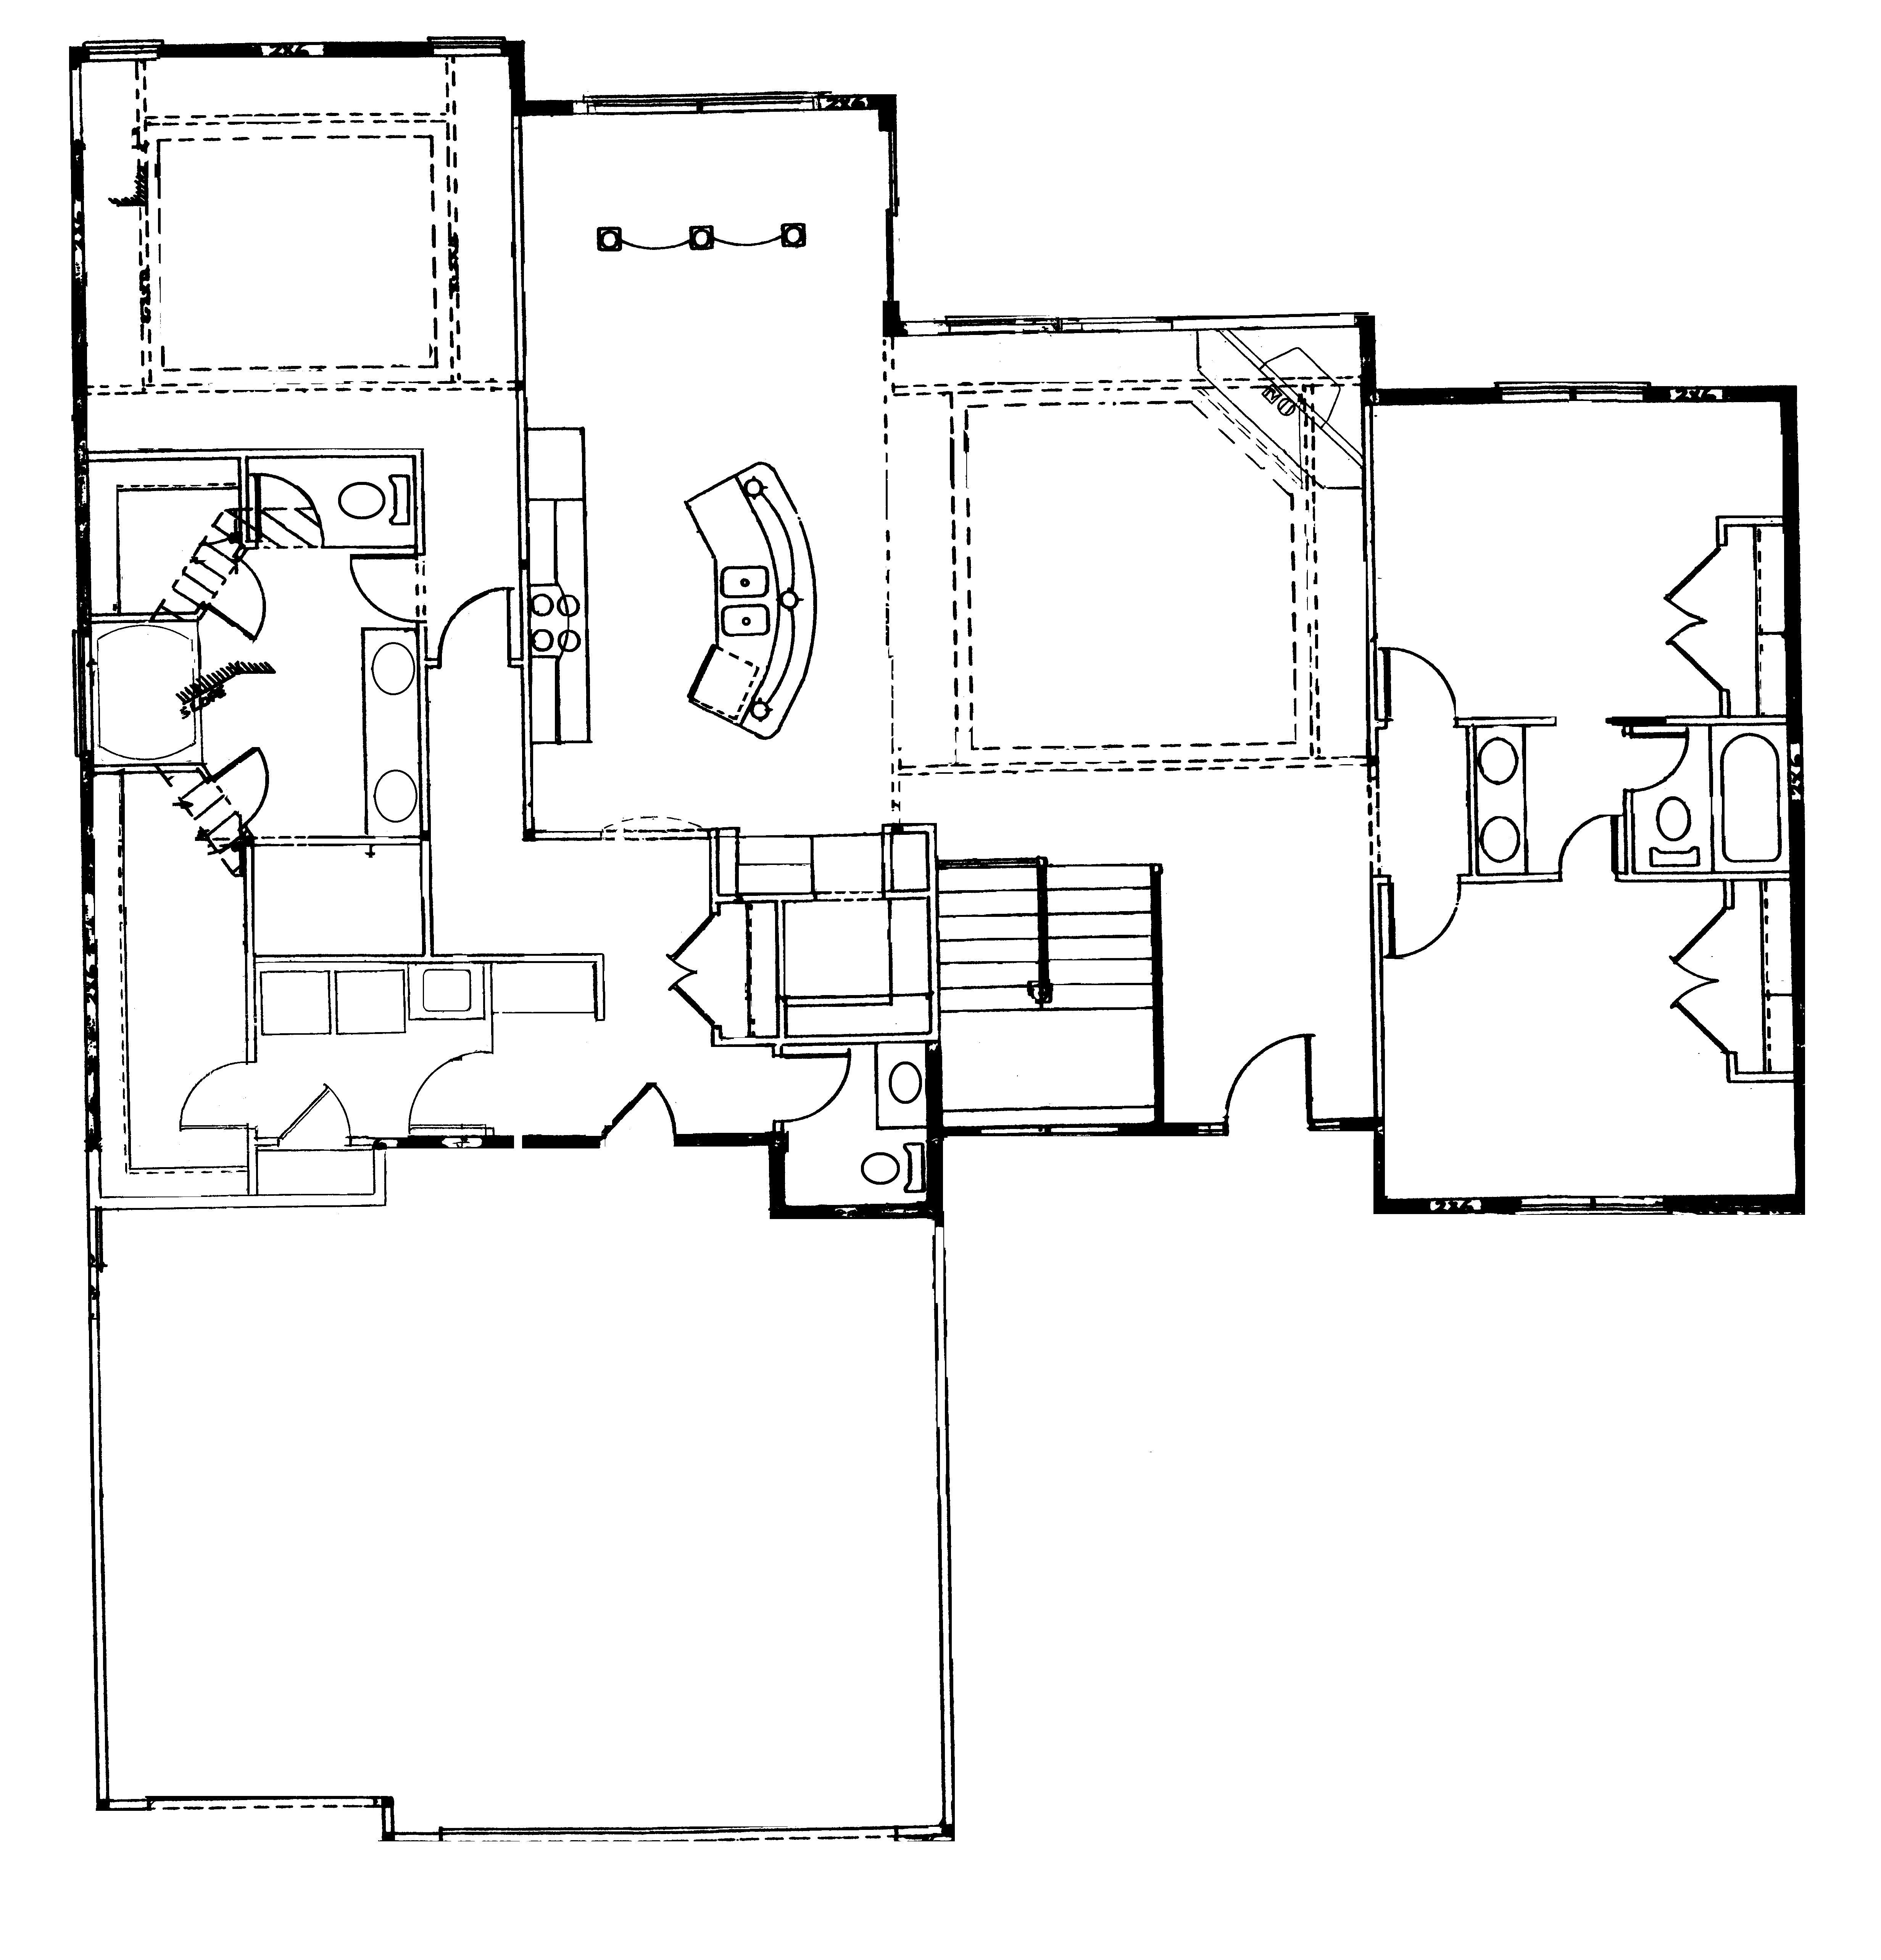 floor plans timberline homes inc timberland homes floor plans home plan